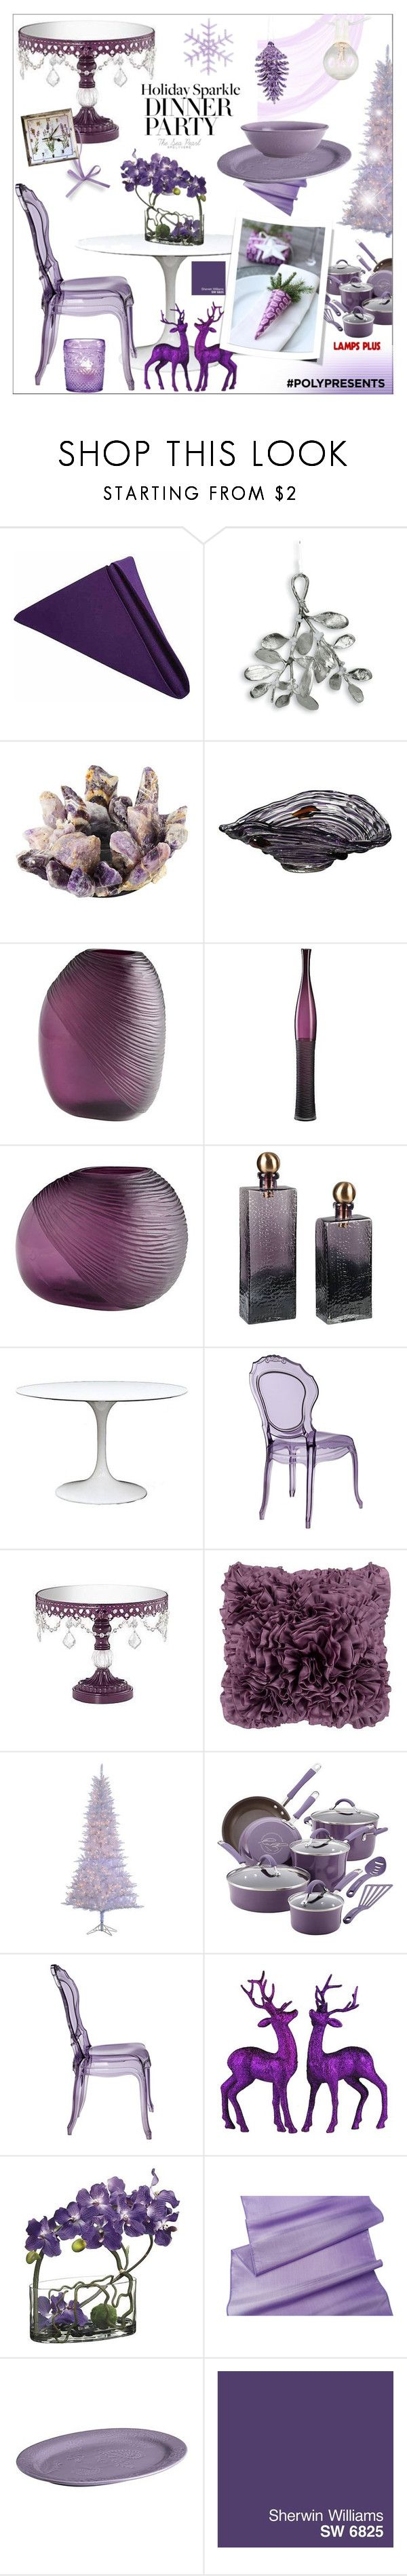 """""""Dinner Party: 2018 Color of The Year"""" by theseapearl ❤ liked on Polyvore featuring interior, interiors, interior design, home, home decor, interior decorating, Michael Aram, Dale Tiffany, Surya and Sterling"""